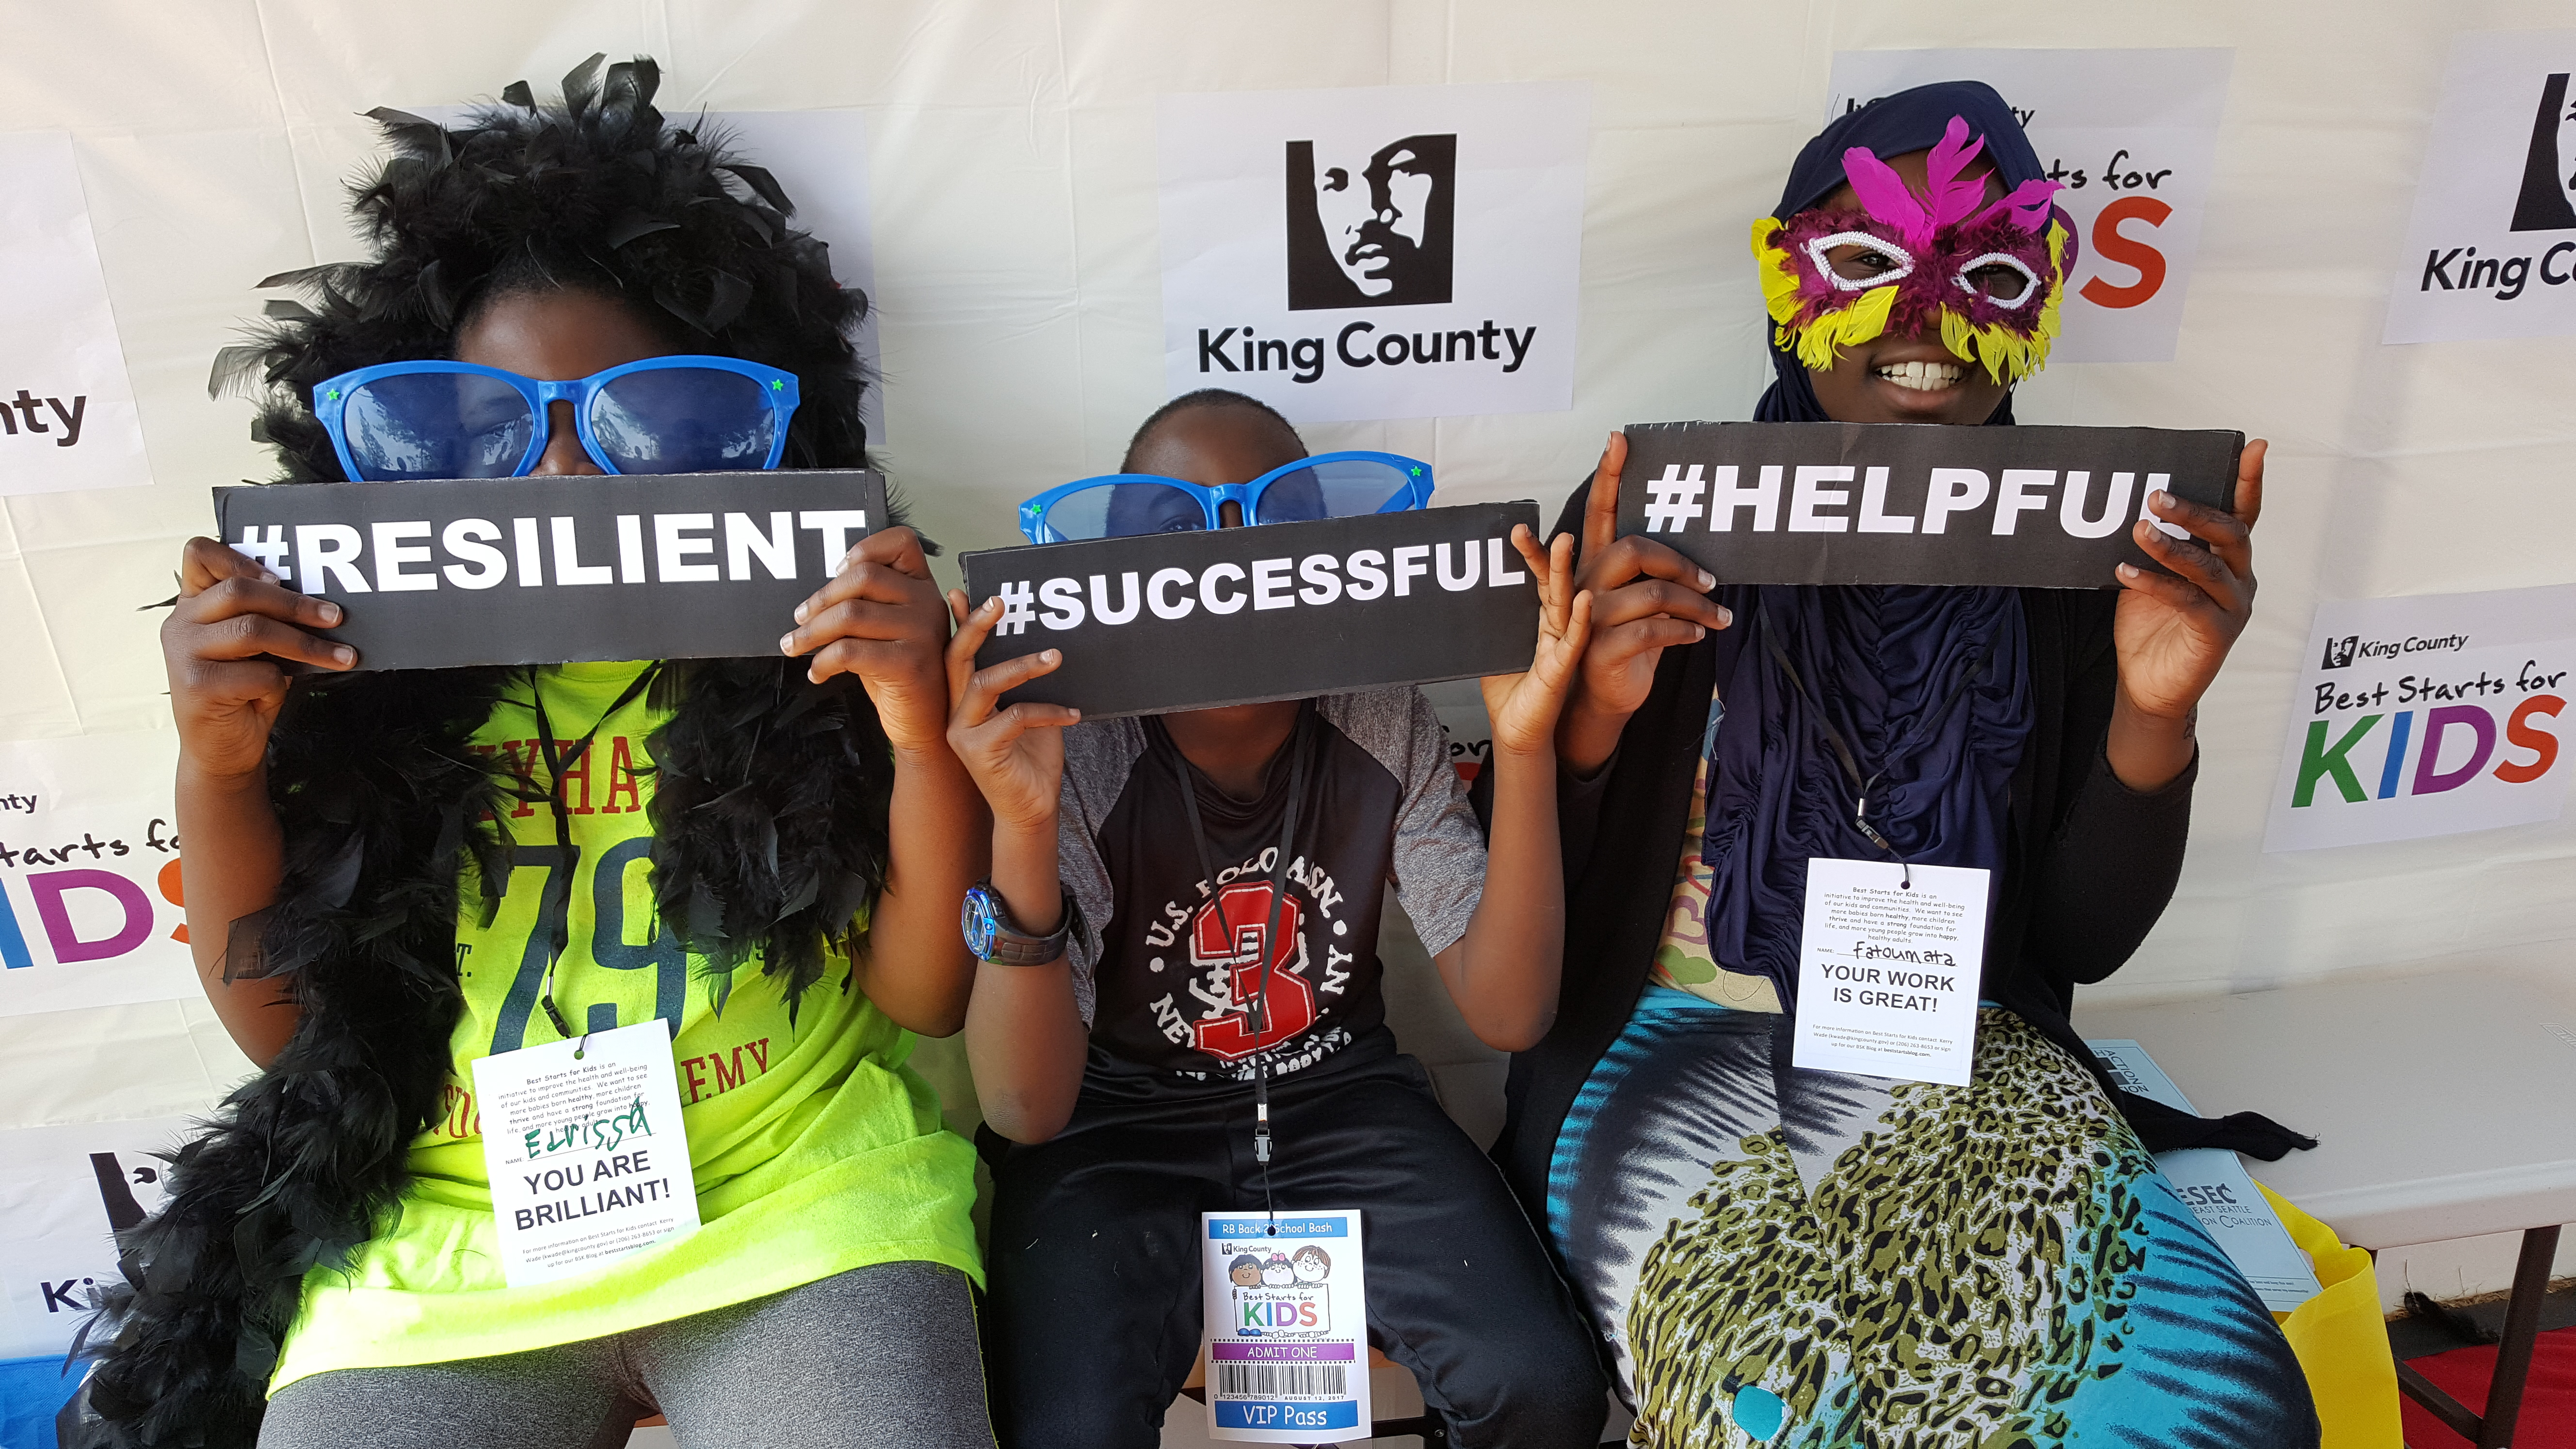 RESILIENT SUCCESSFUL HELPFUL FAMILY